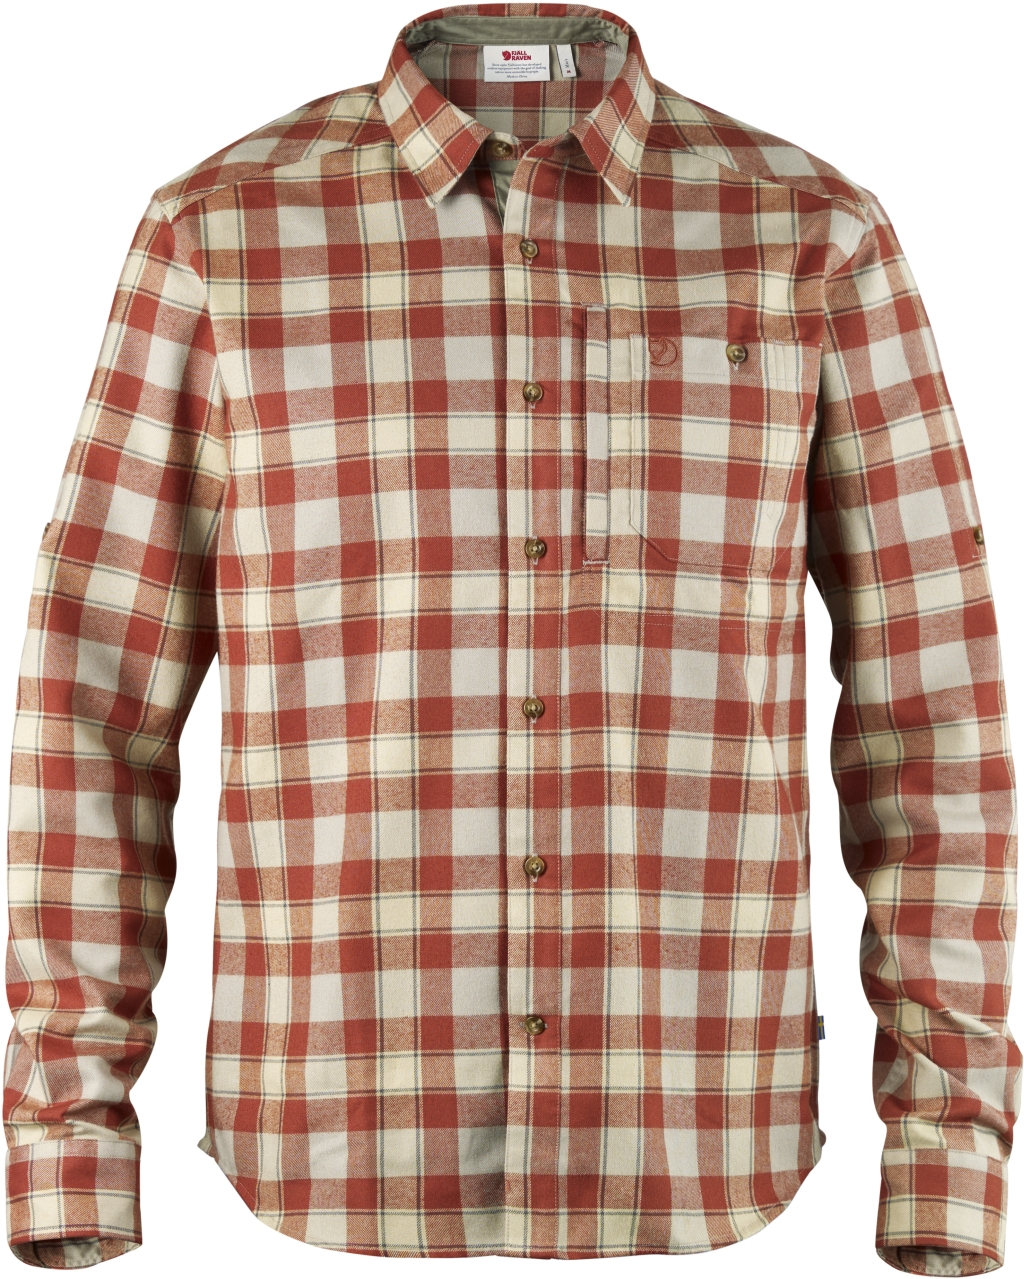 FjallRaven Fjallglim Shirt Autumn Leaf-30